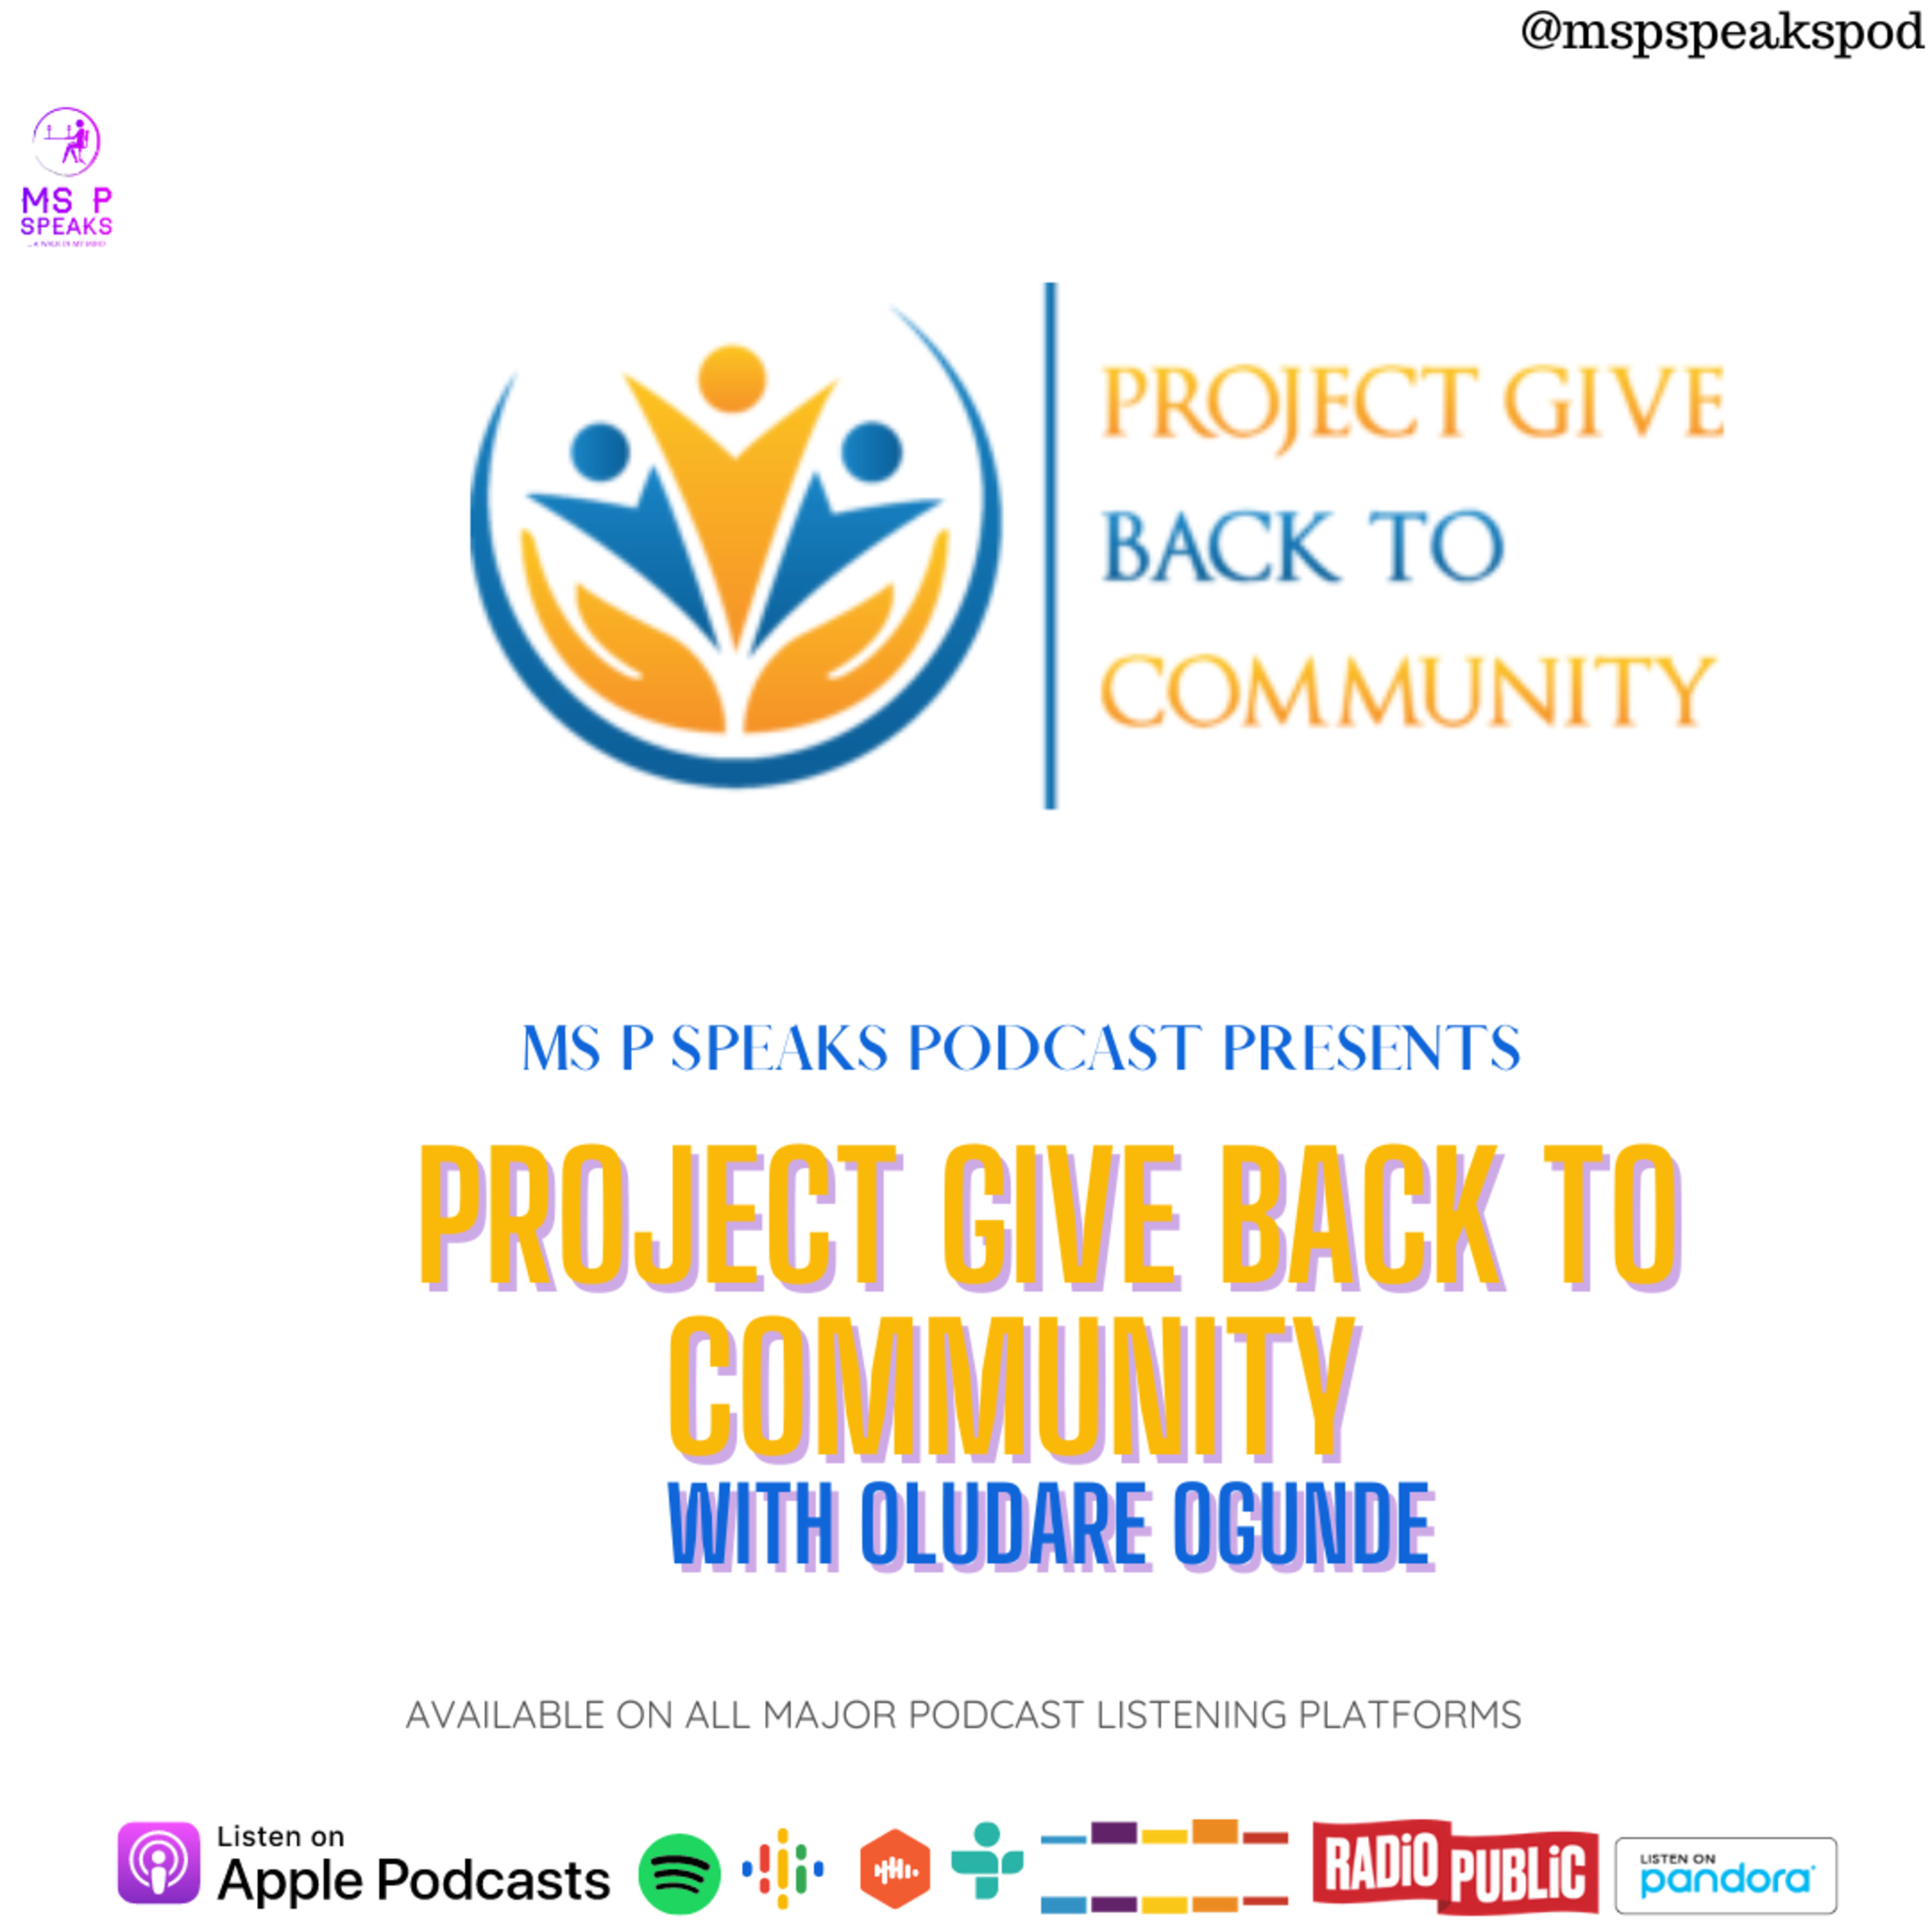 Season 4; Episode 9 - Project Give Back To Community, with Oludare Ogunde